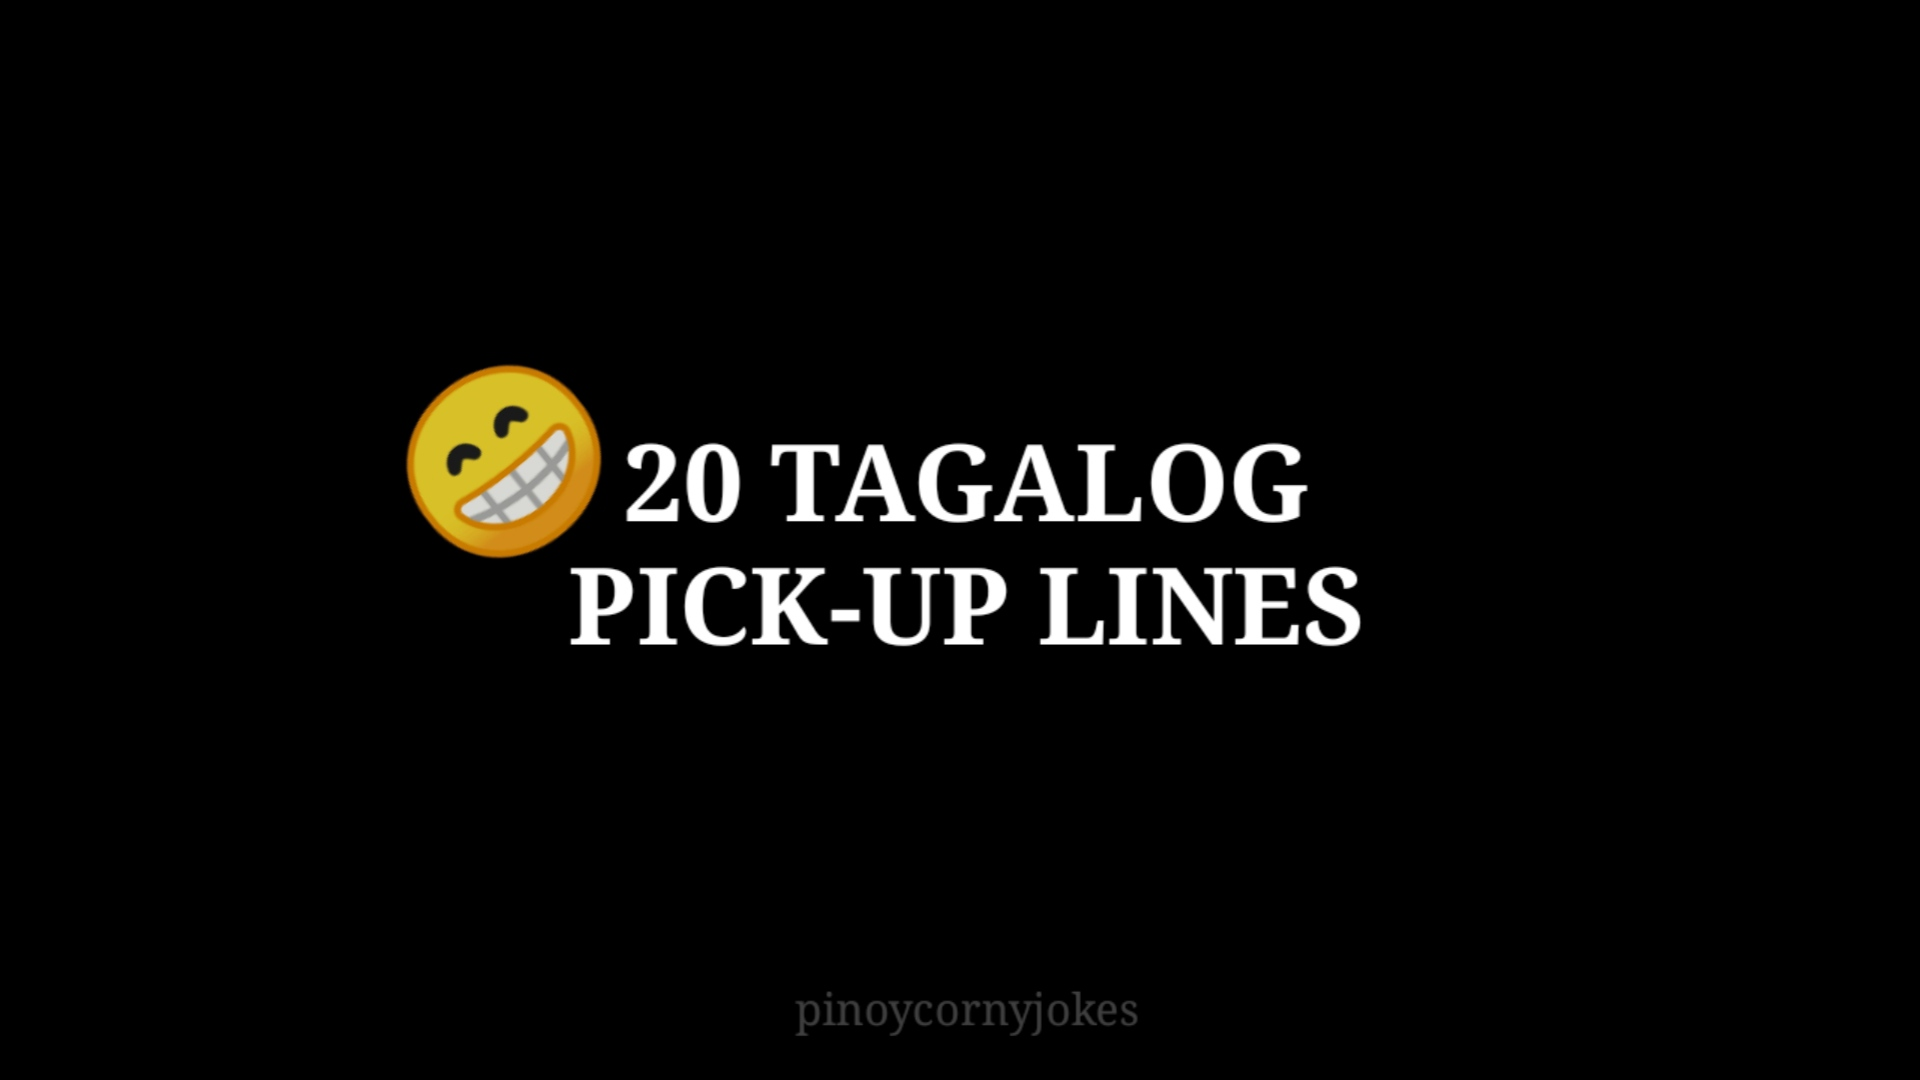 ⭐️ best local hook up lines funny tagalog 2019